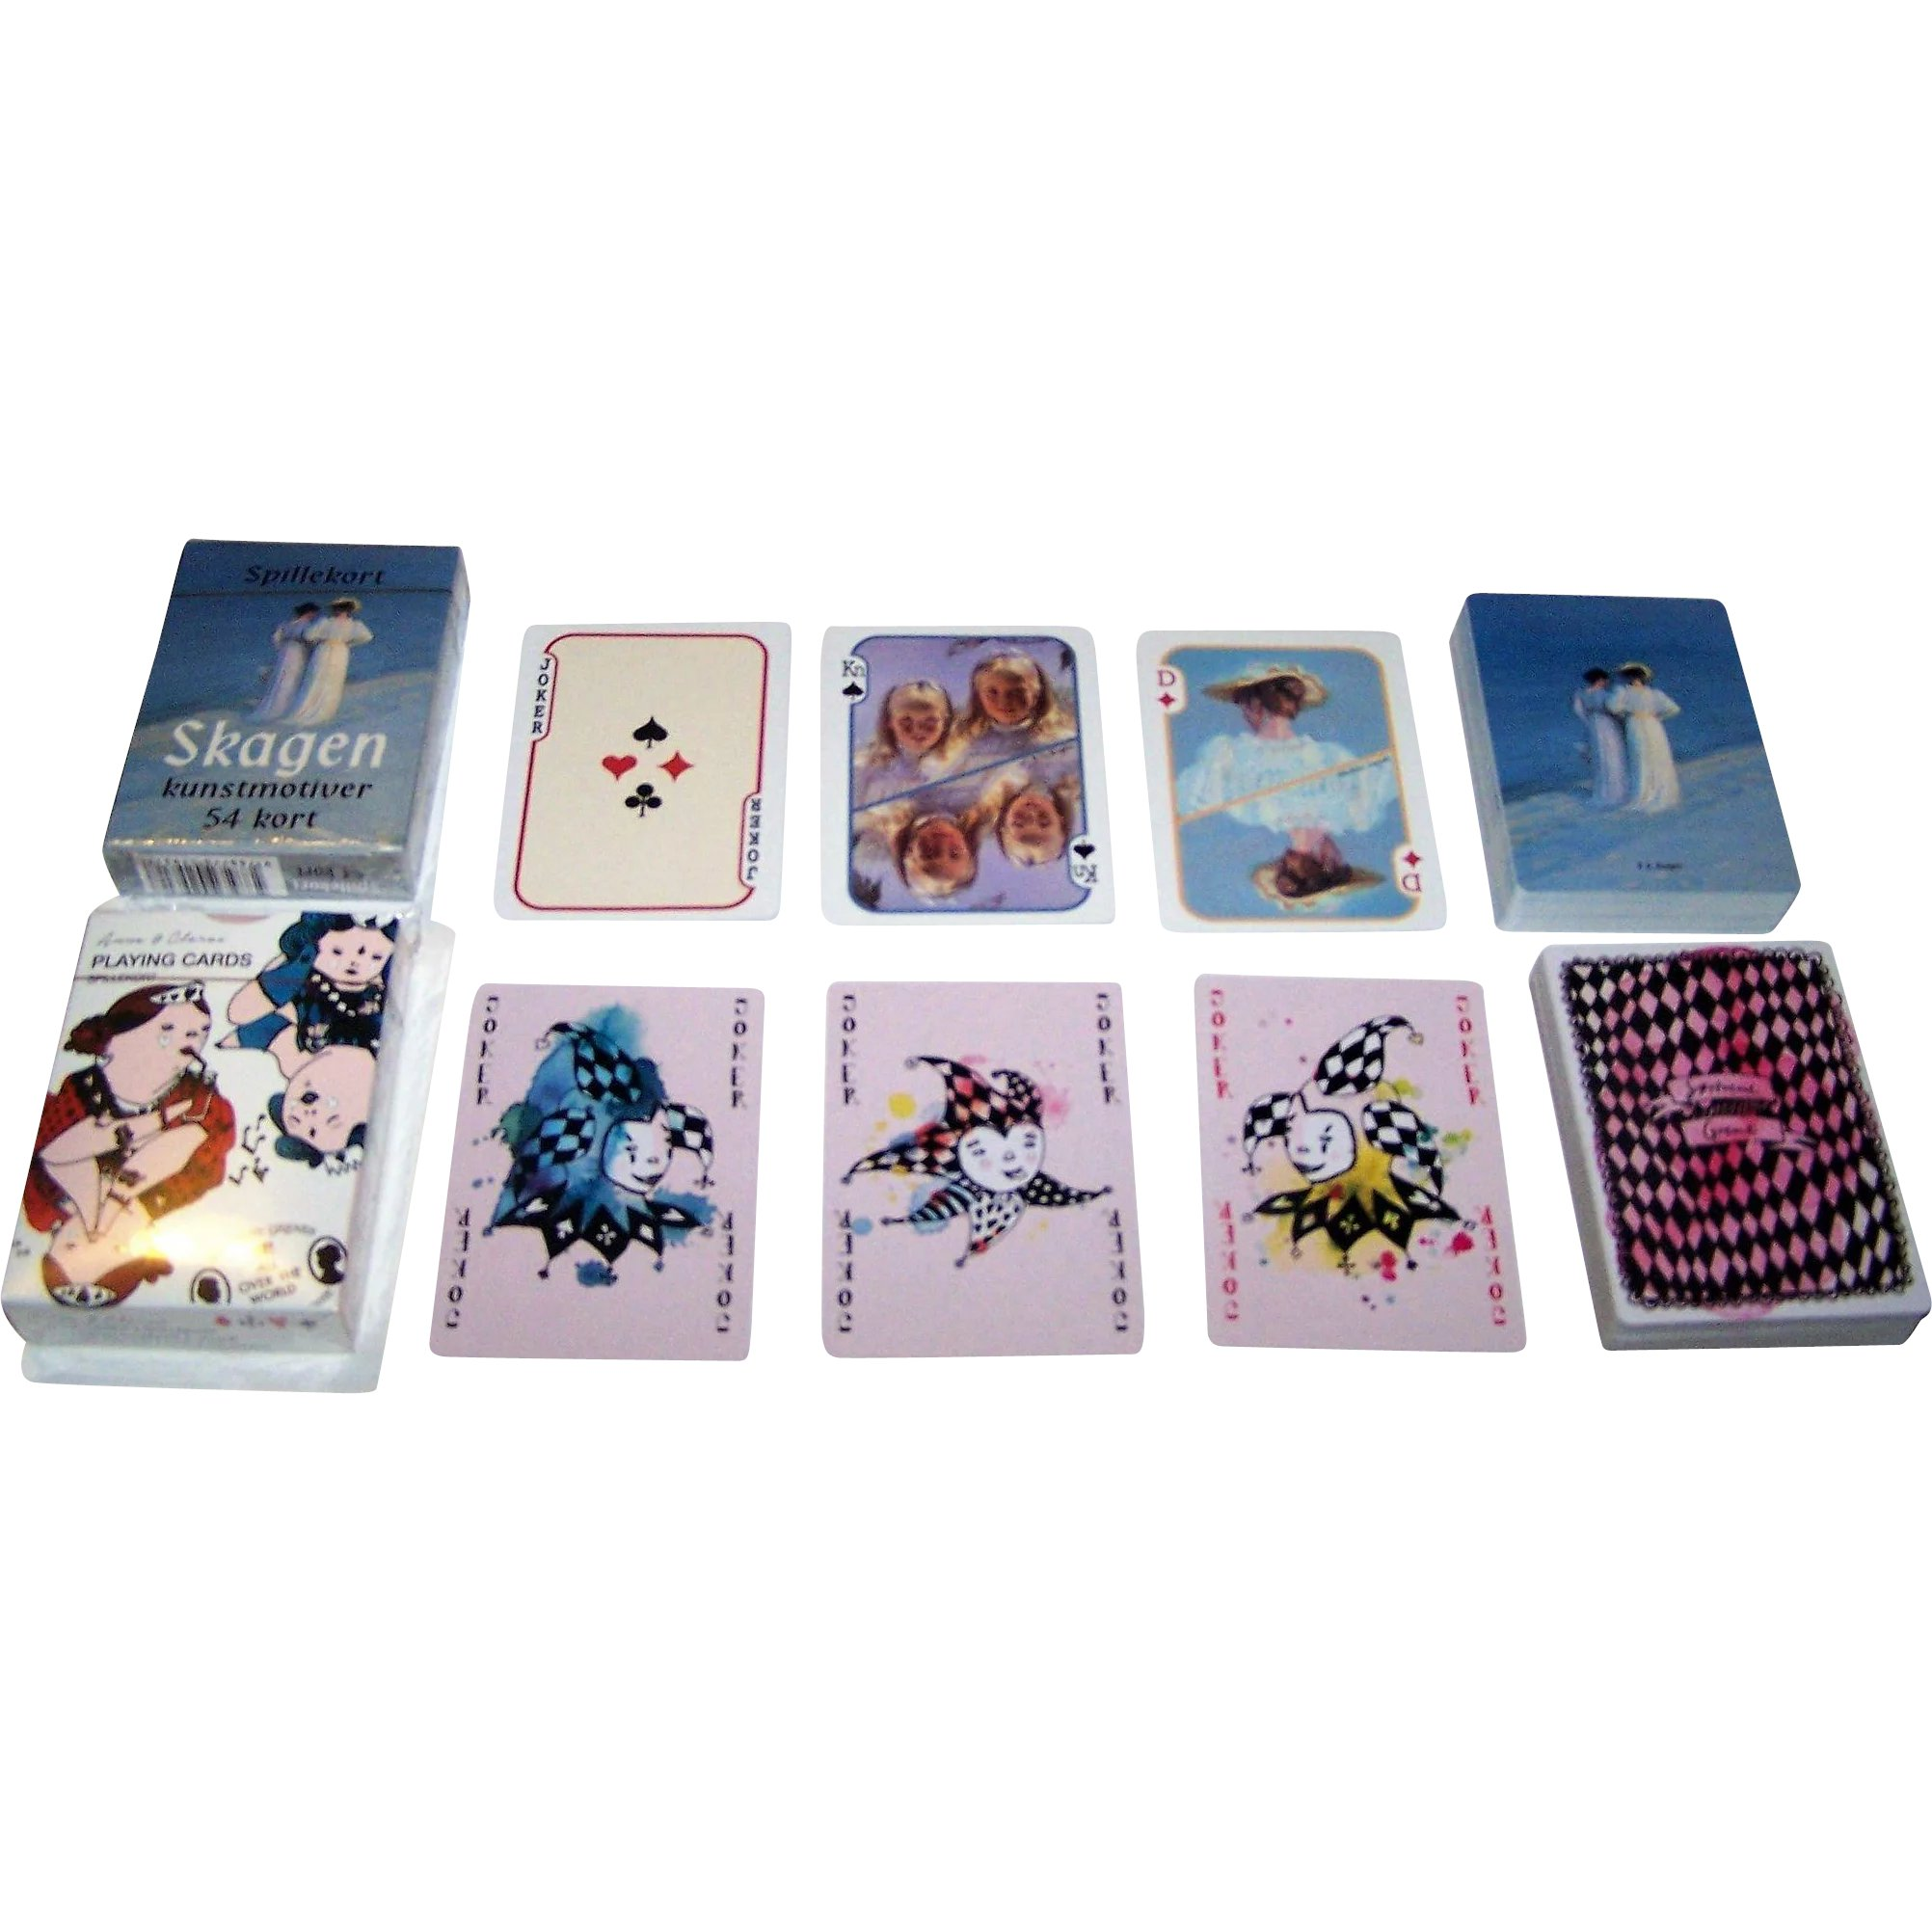 8621469a0ff 2 Non-Standard Decks Denmark Playing Cards, $15/ea.: (i) Lamberth : Two For  His Heels | Ruby Lane